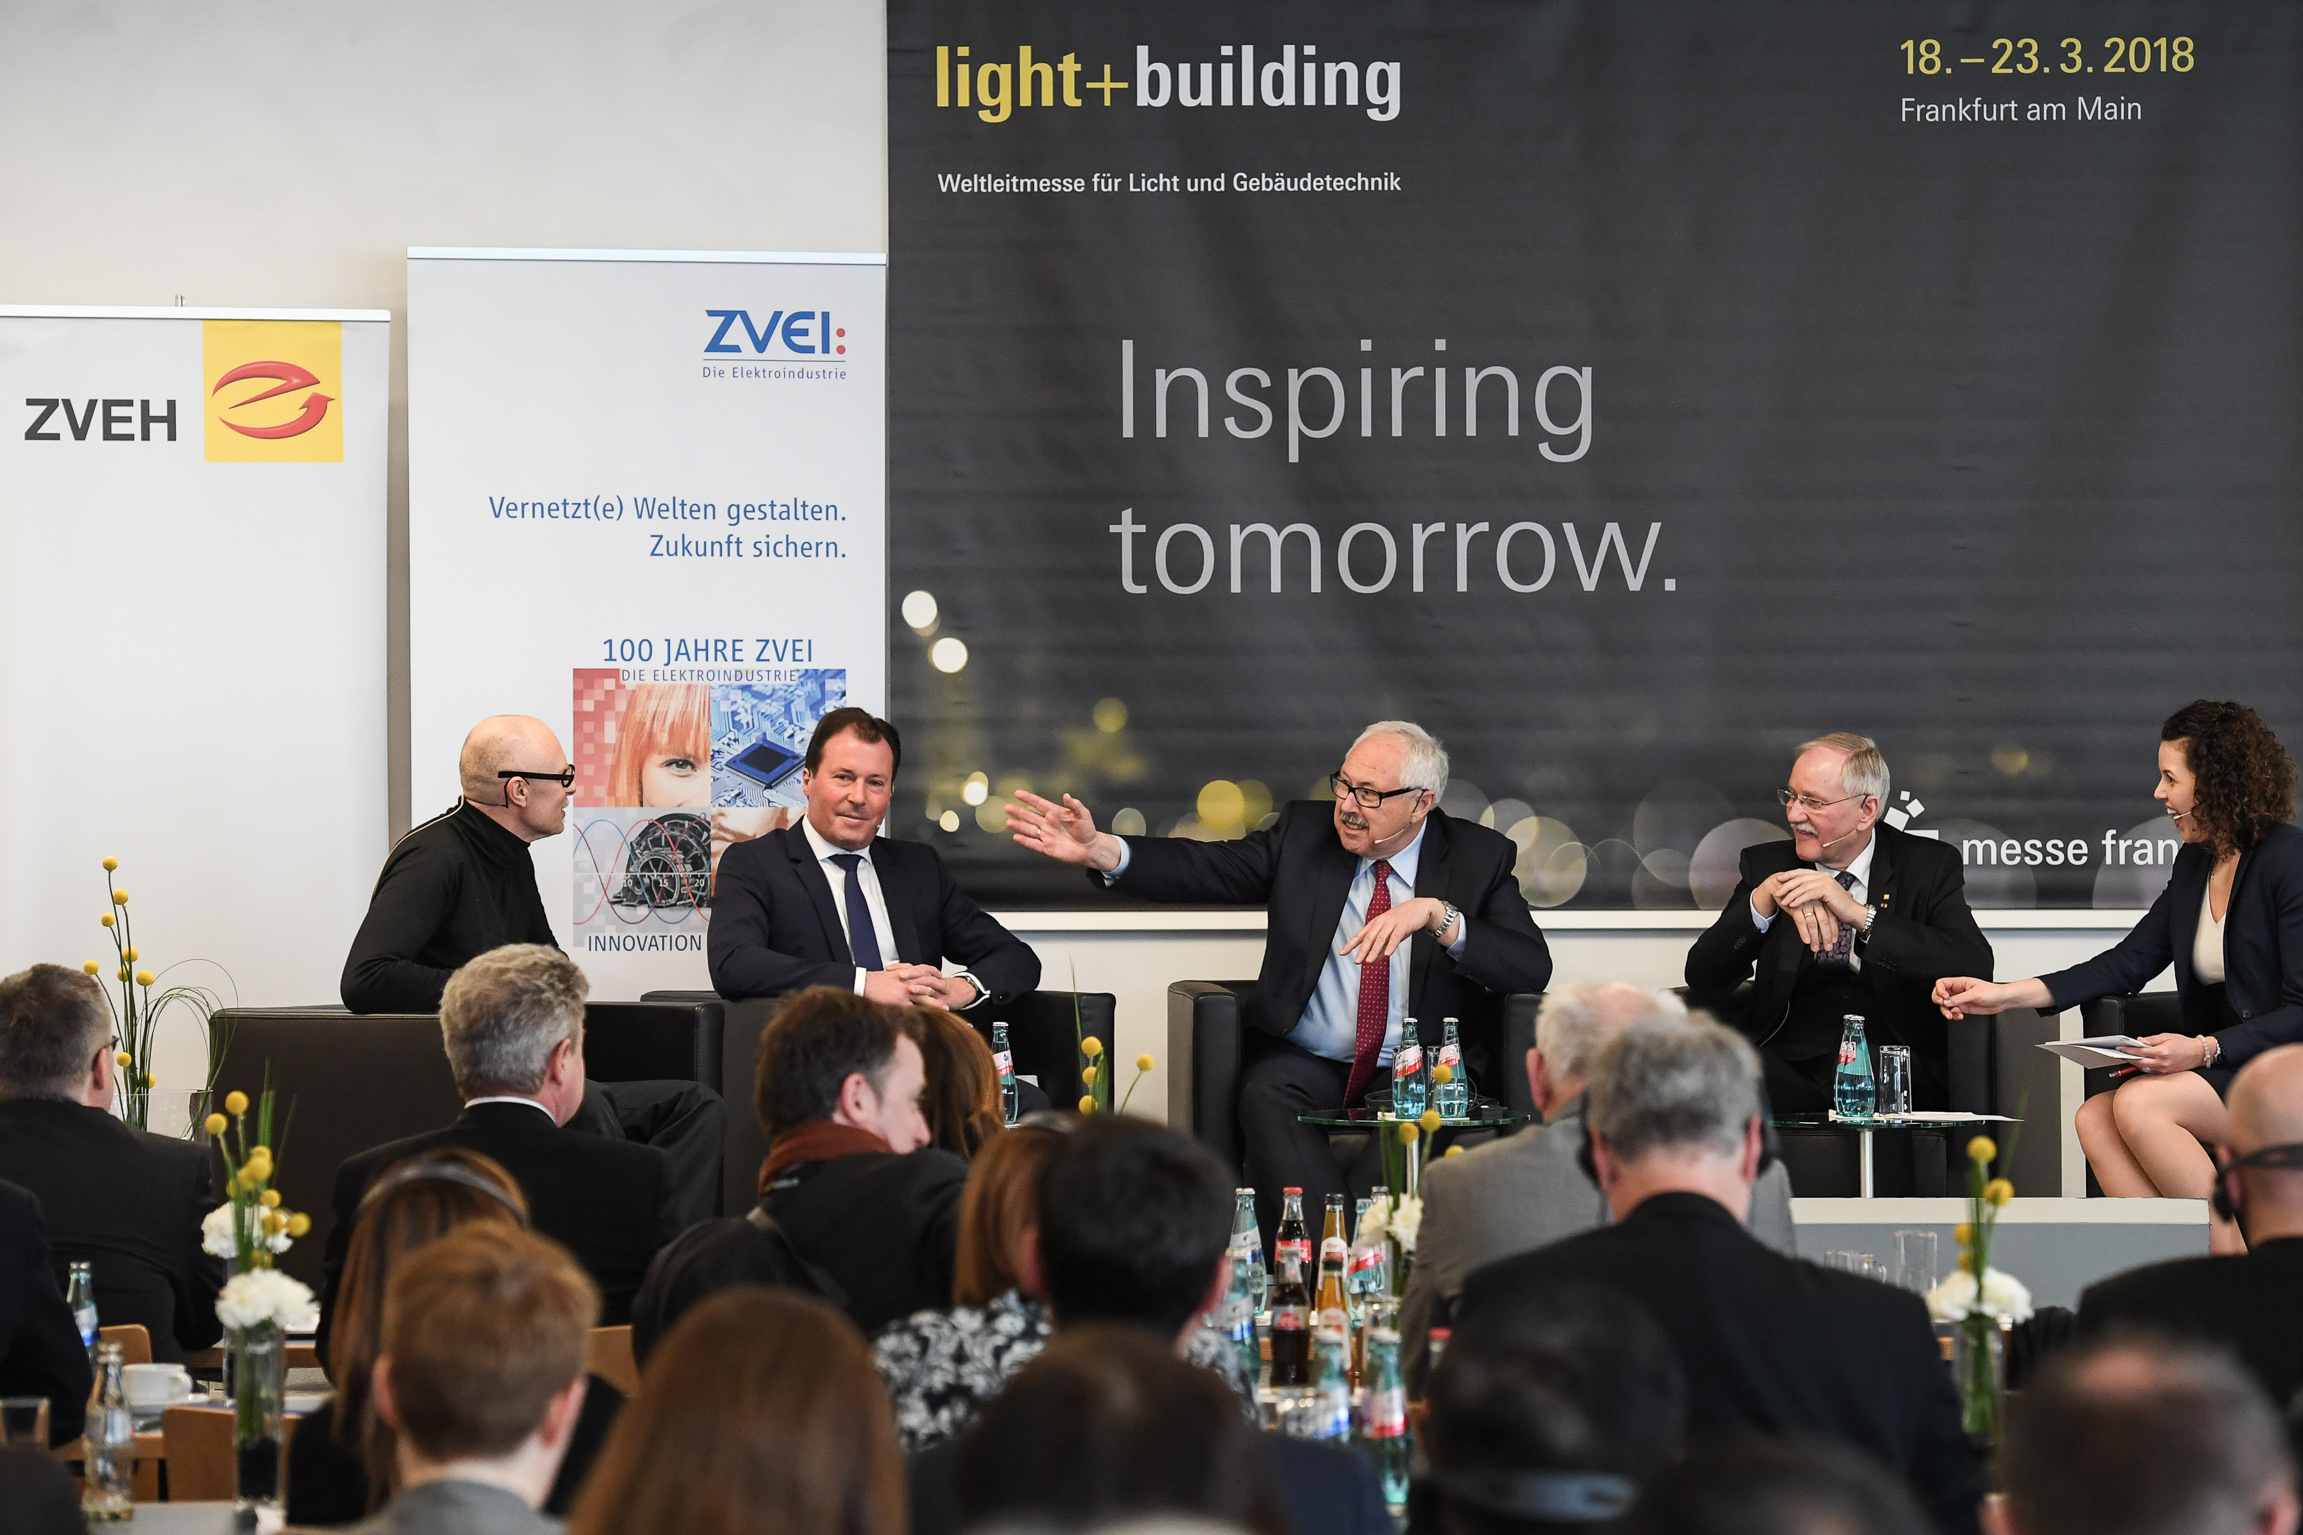 f.l.t.r.: Prof. Wolfgang Henseler, Wolfgang Marzin (President and Chief Executive Officer (CEO) Messe Frankfurt GmbH),  Michael Ziesemer (President of ZVEI), Dipl.-Ing. Lothar Hellmann (President ZVEH), Presenter Katie Gallus